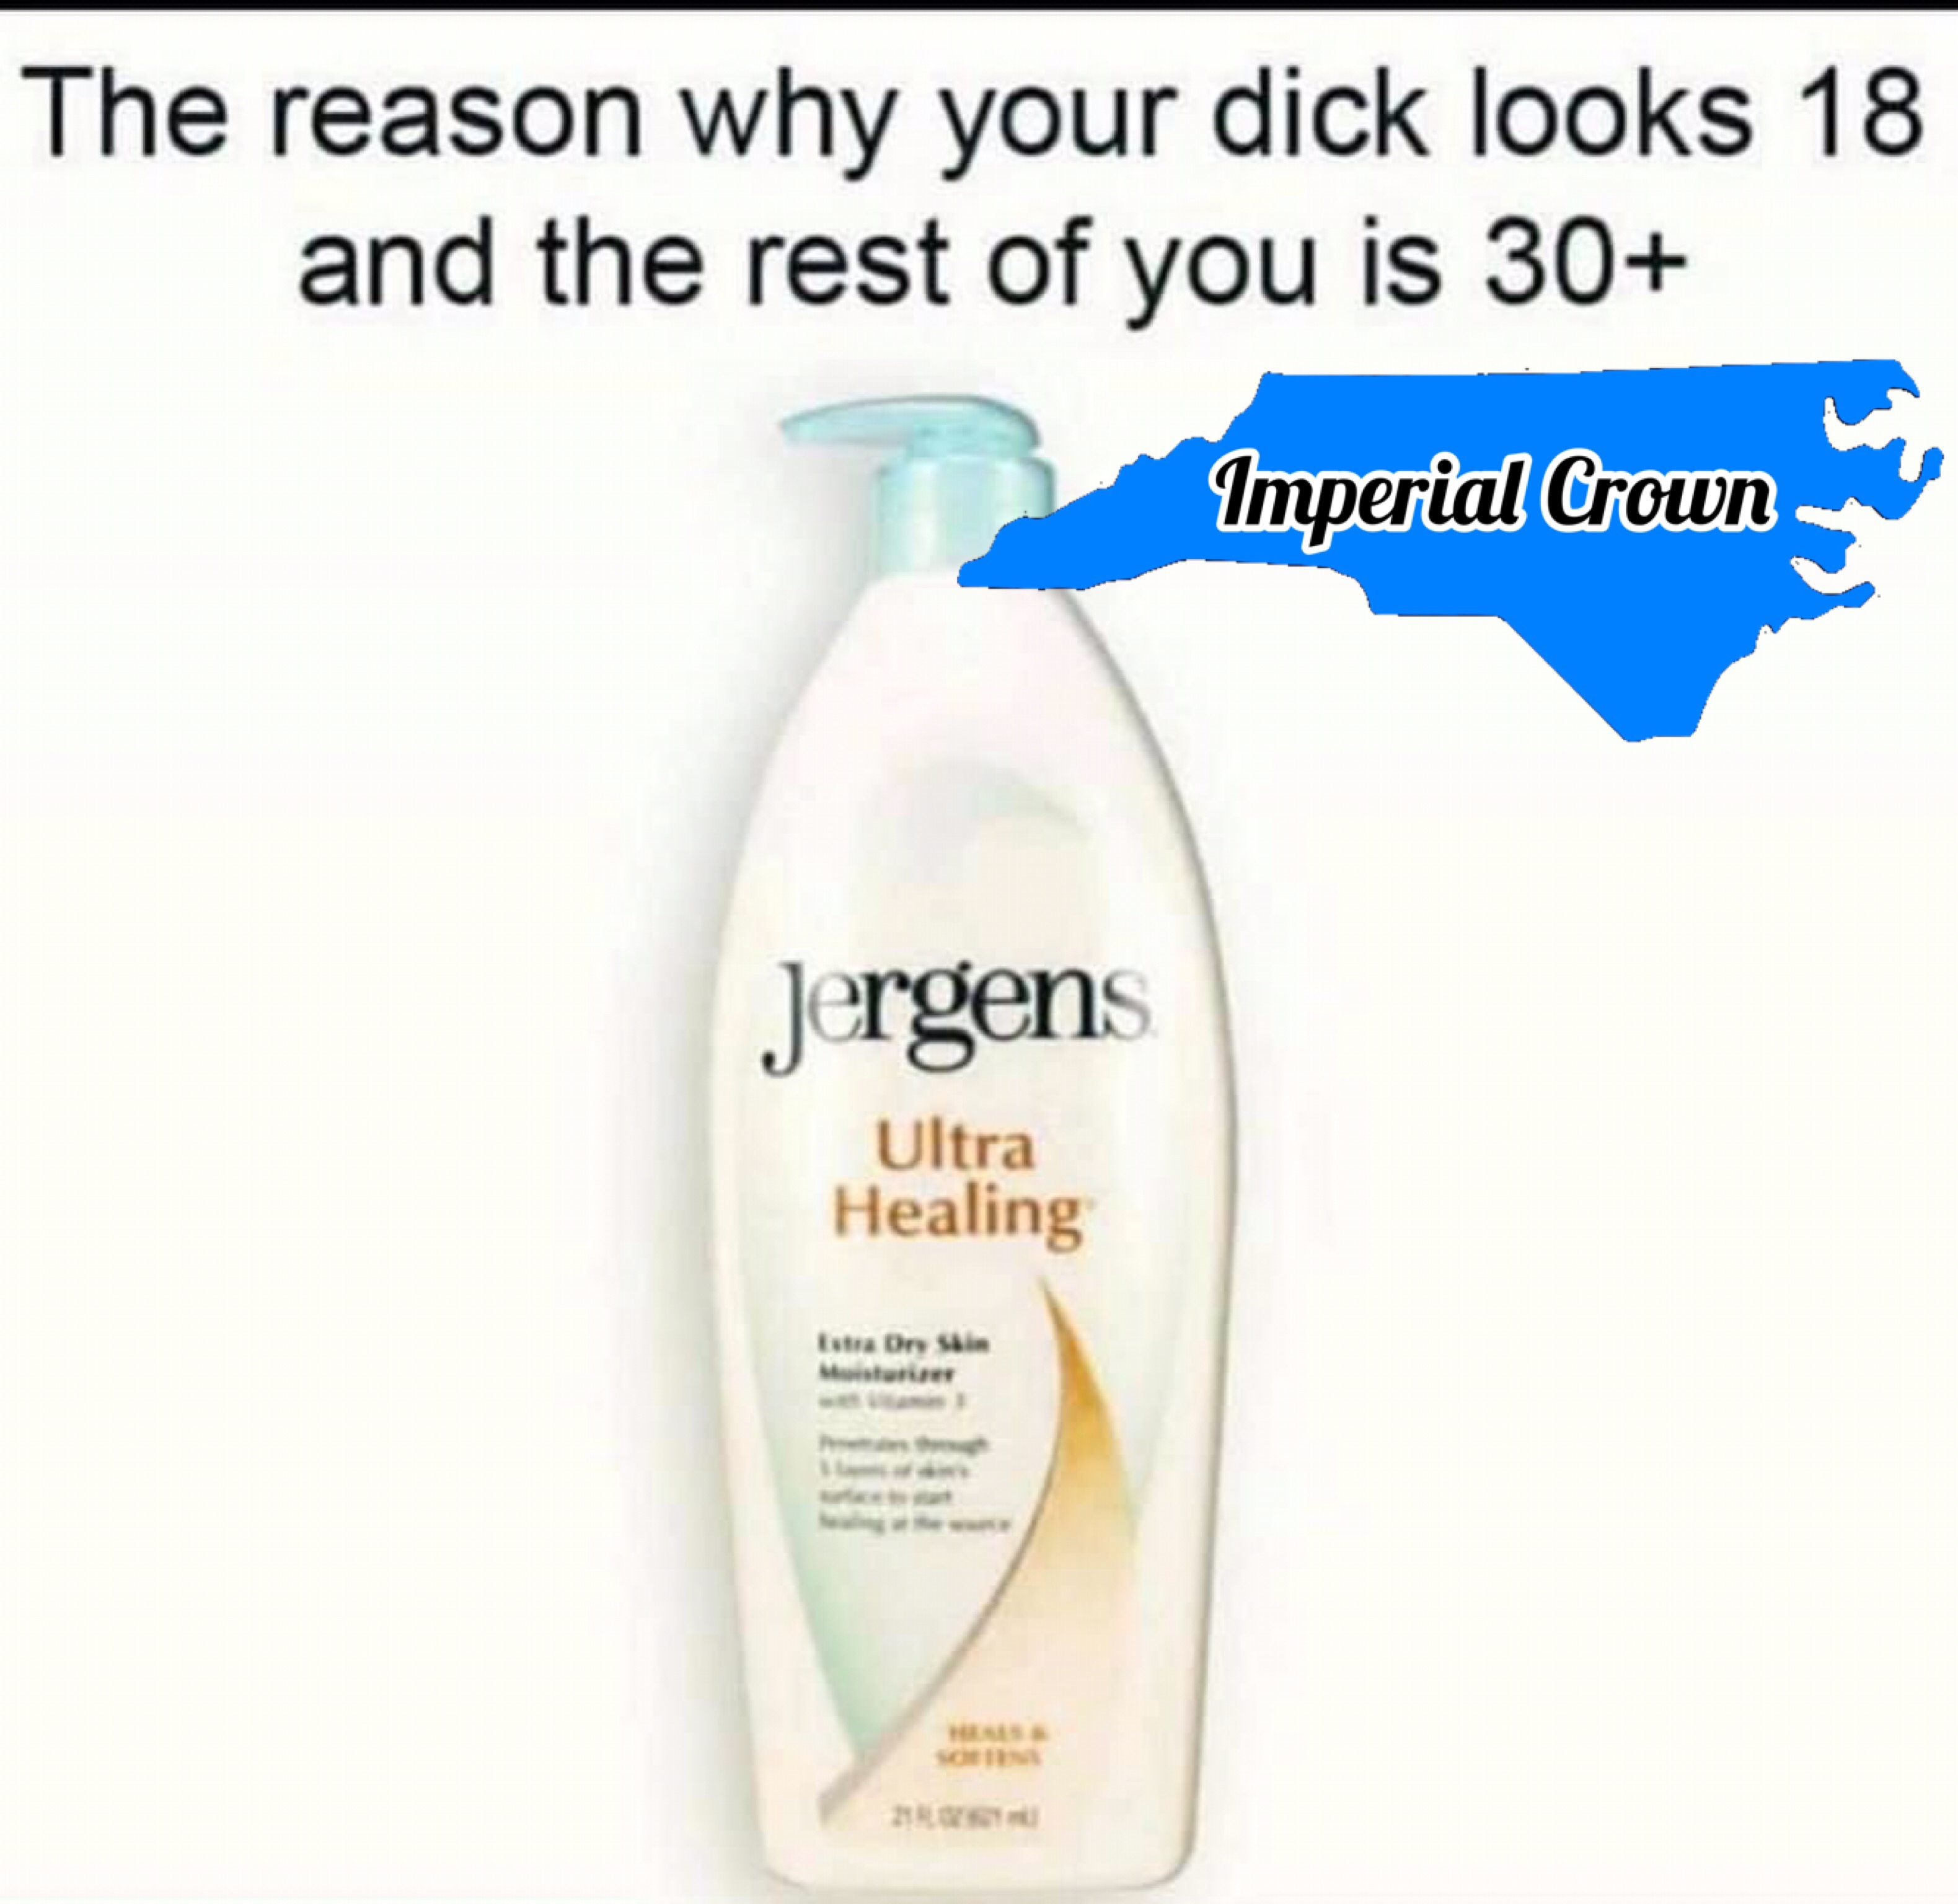 The reason why your dick looks 18 and the rest…..